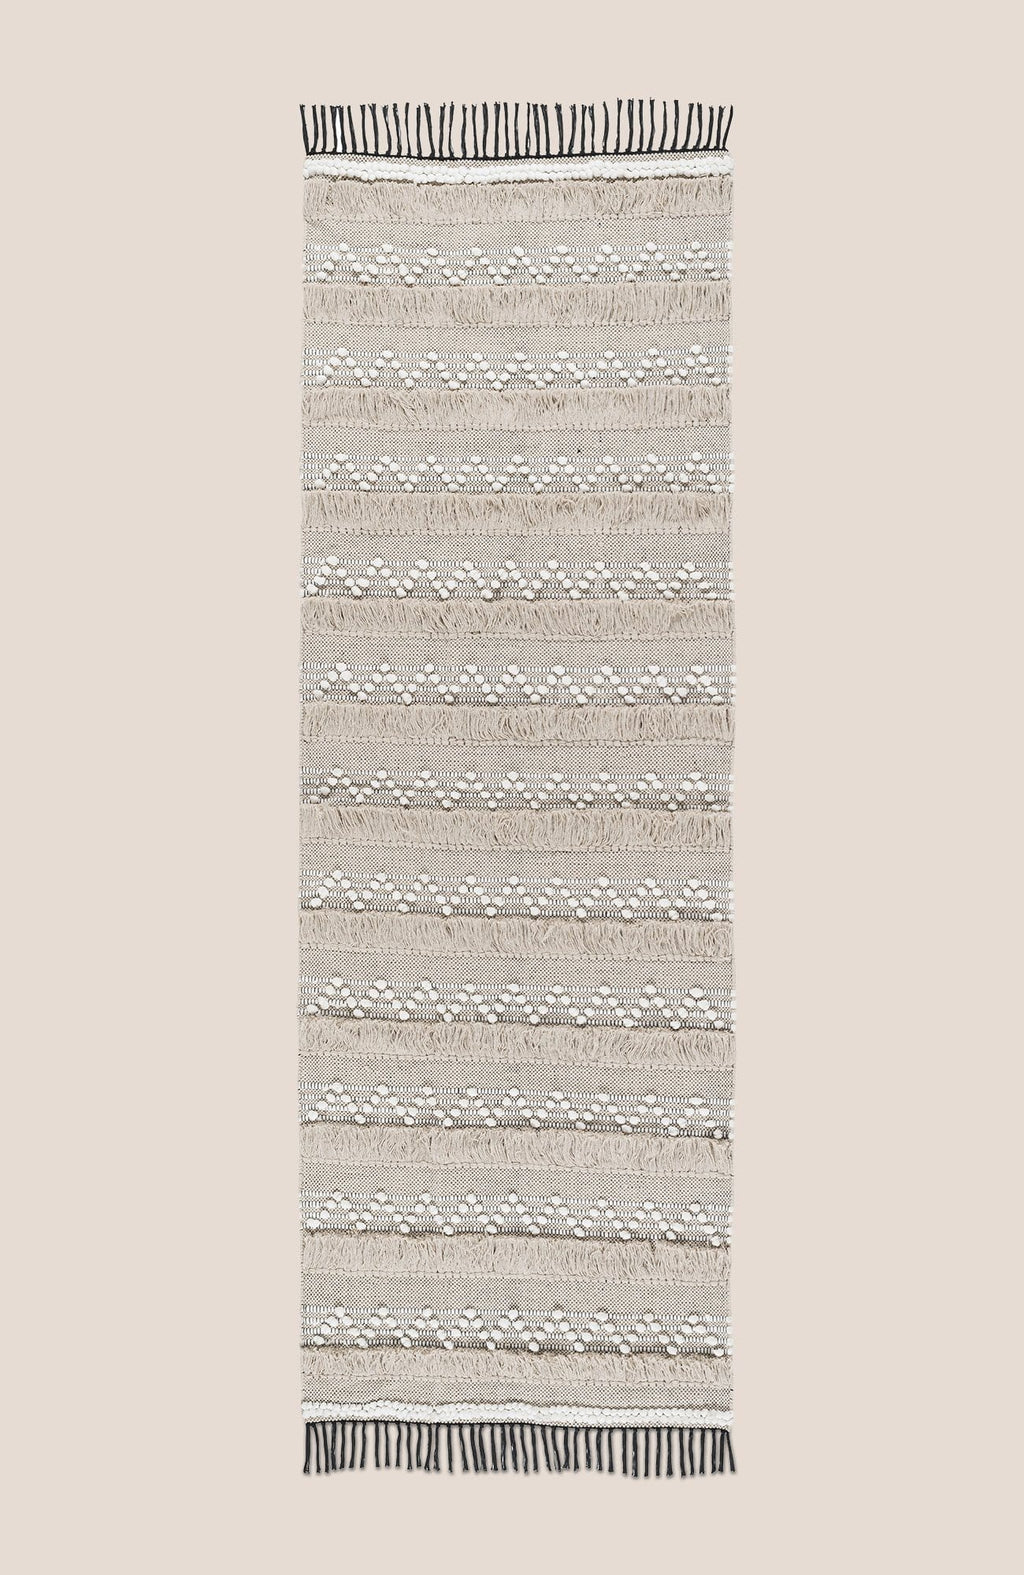 Tassel Boho Runner Rug - Ember - Home Decor | Shop Baskets, Ceramics, Pillows, Rugs & Wall Hangs online